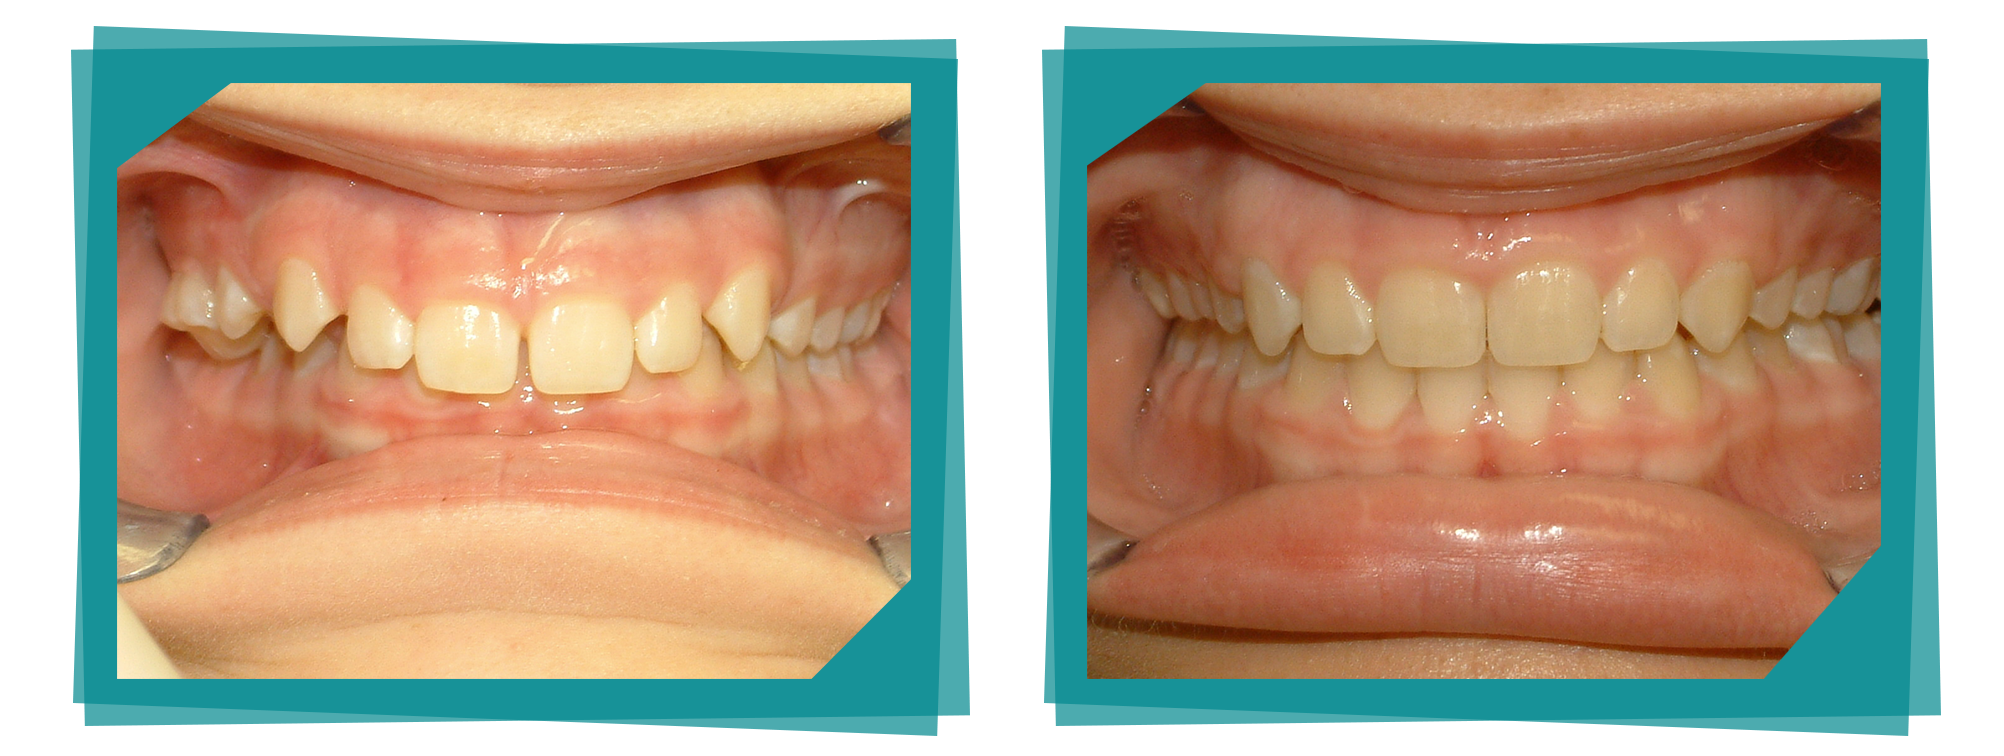 Parkcrest Dental Group before and after picture.